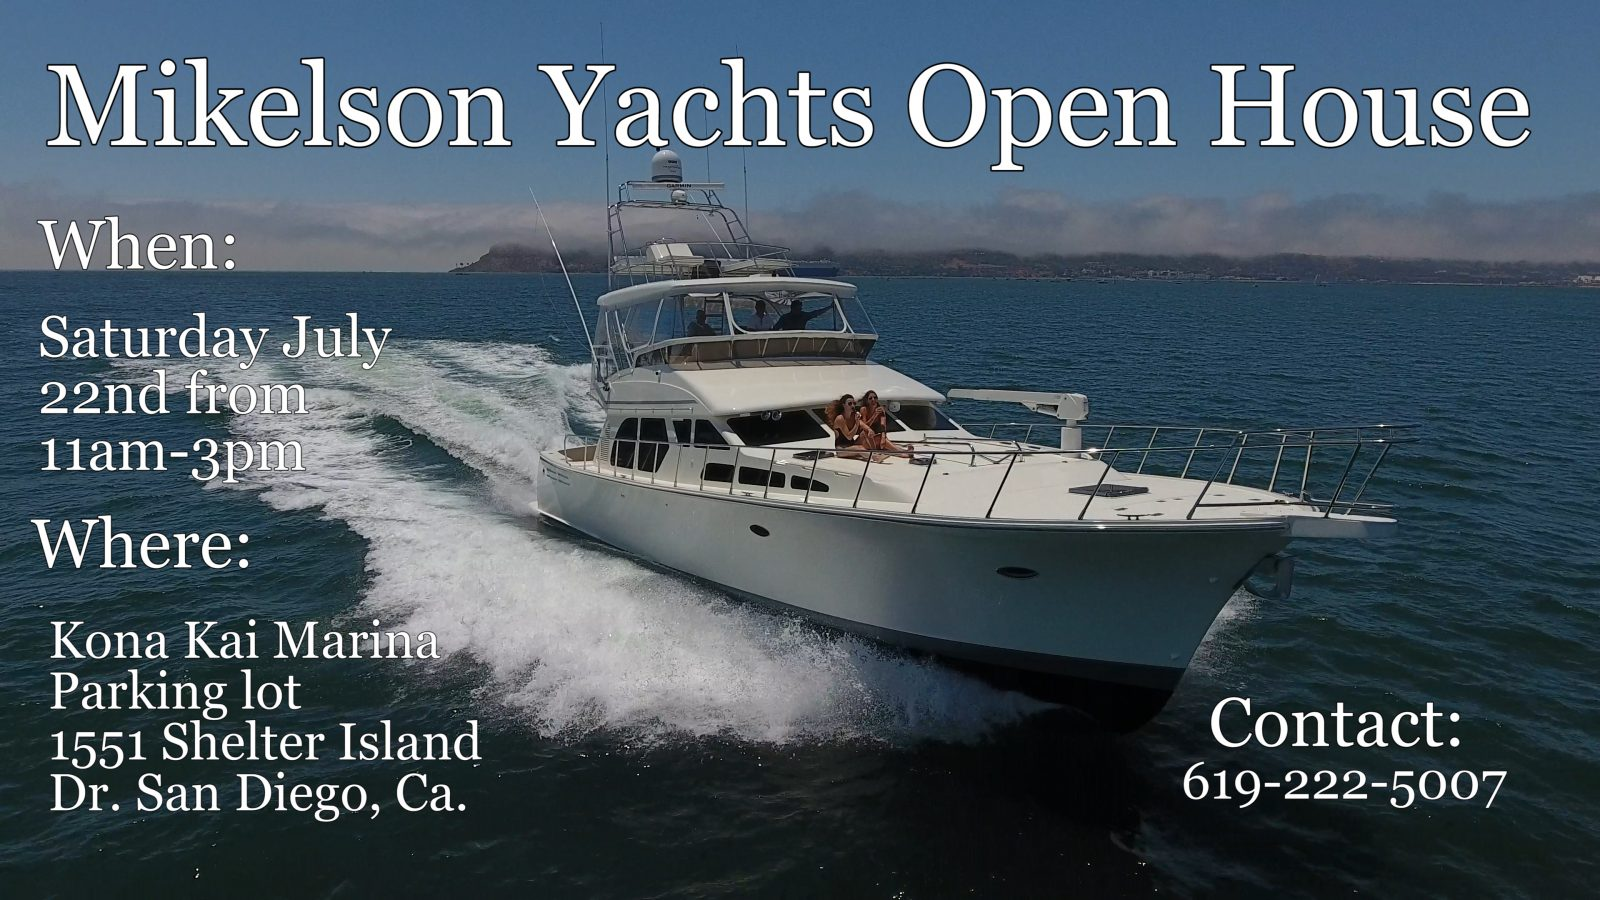 Check out Mikelson Yachts at the San Diego Sunroad Marina Boat Show